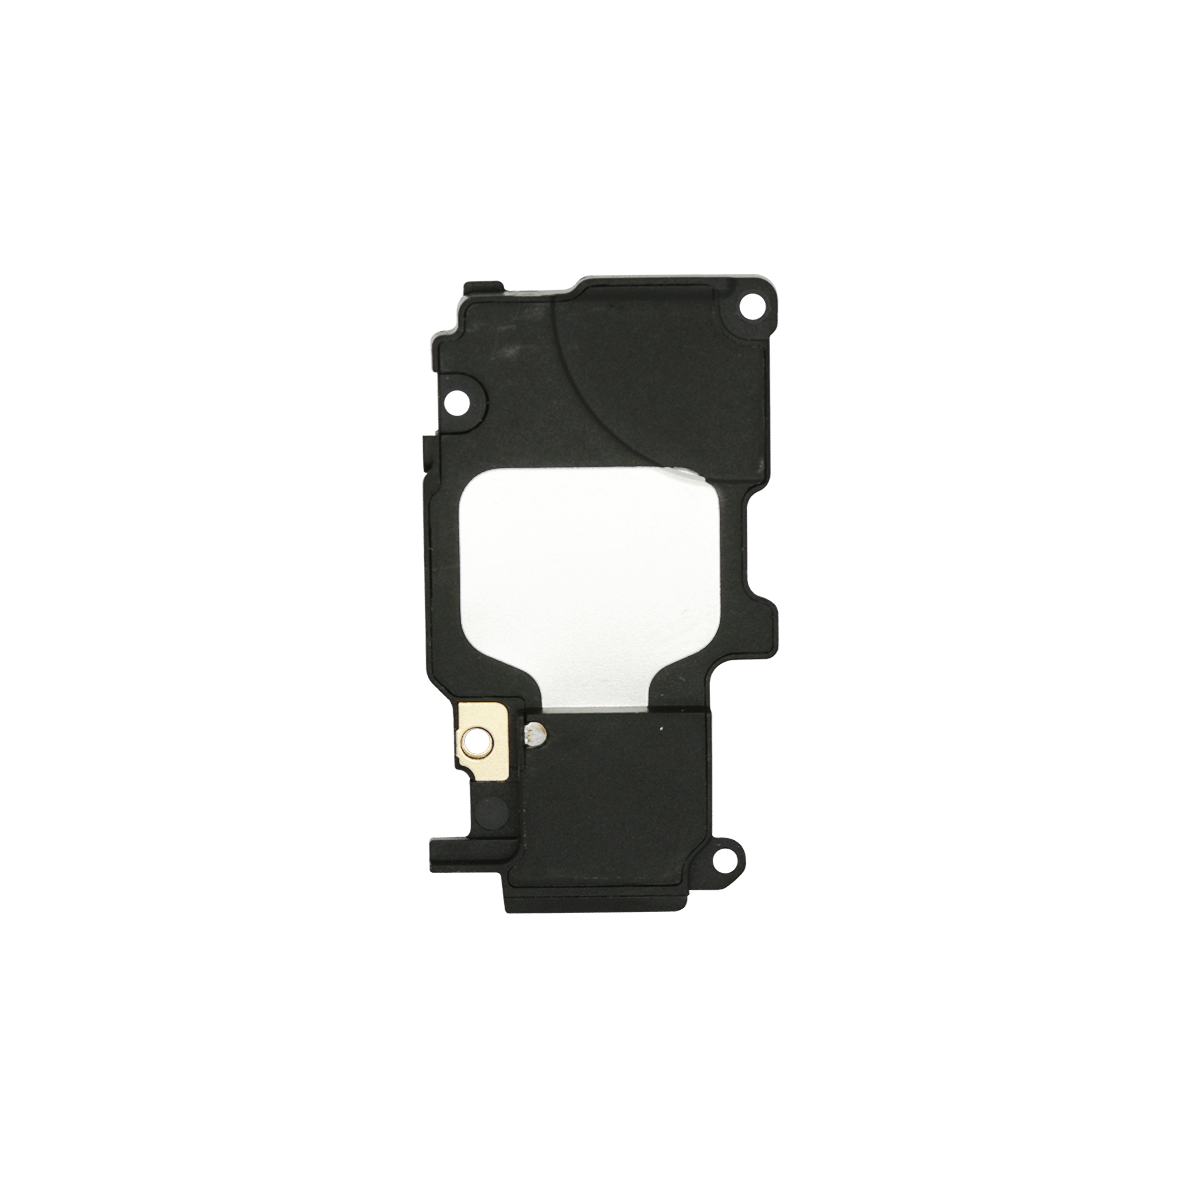 iPhone 6s Loudspeaker Replacement